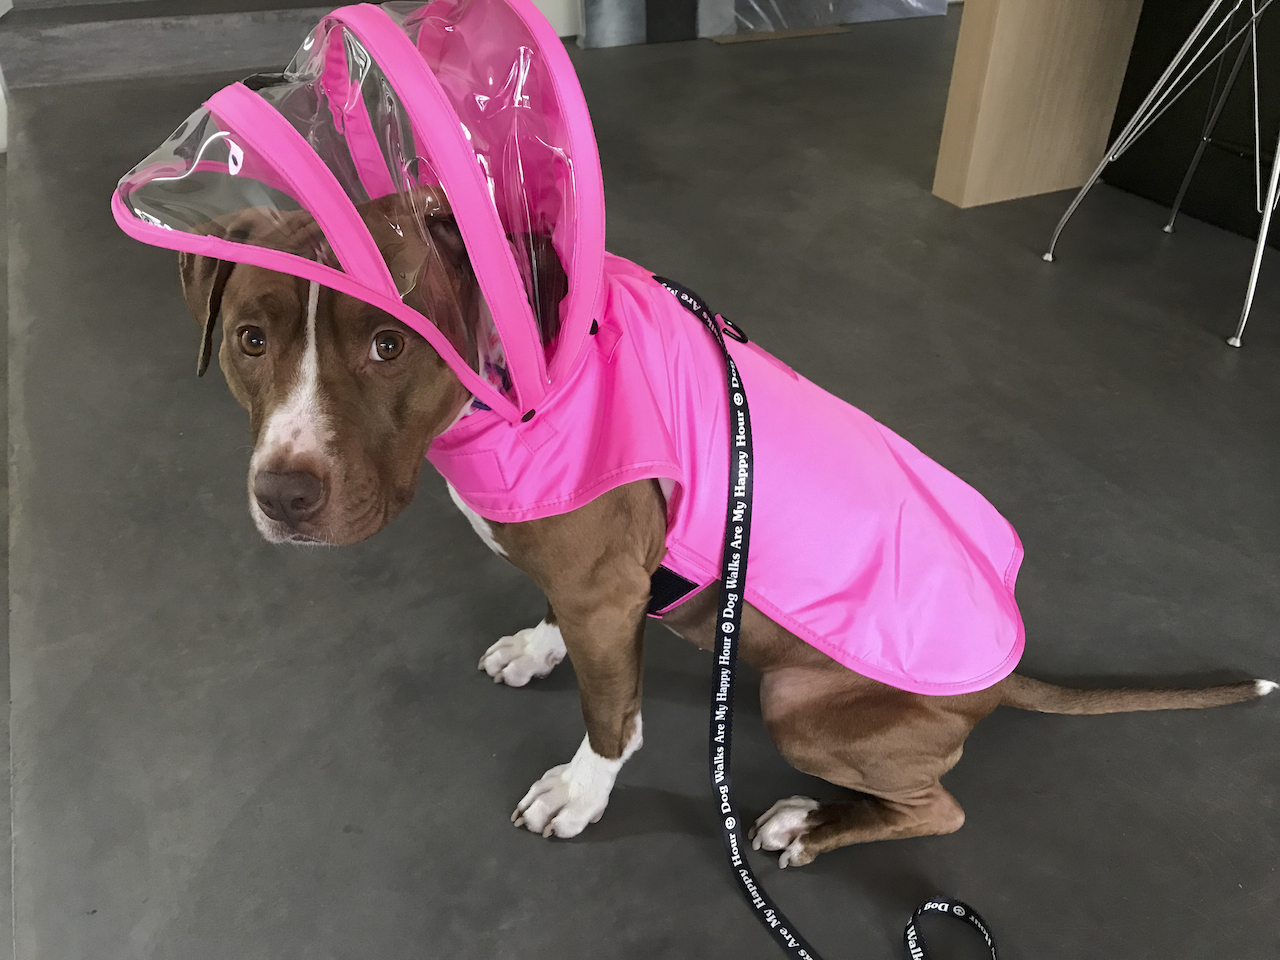 A red American Staffordshire staffie staffy dog wears a silly pink rain jacket from Pushi Pushi and a black leash from Puppies Make Me Happy to do her business. Photo Courtesy of FoodWaterShoes